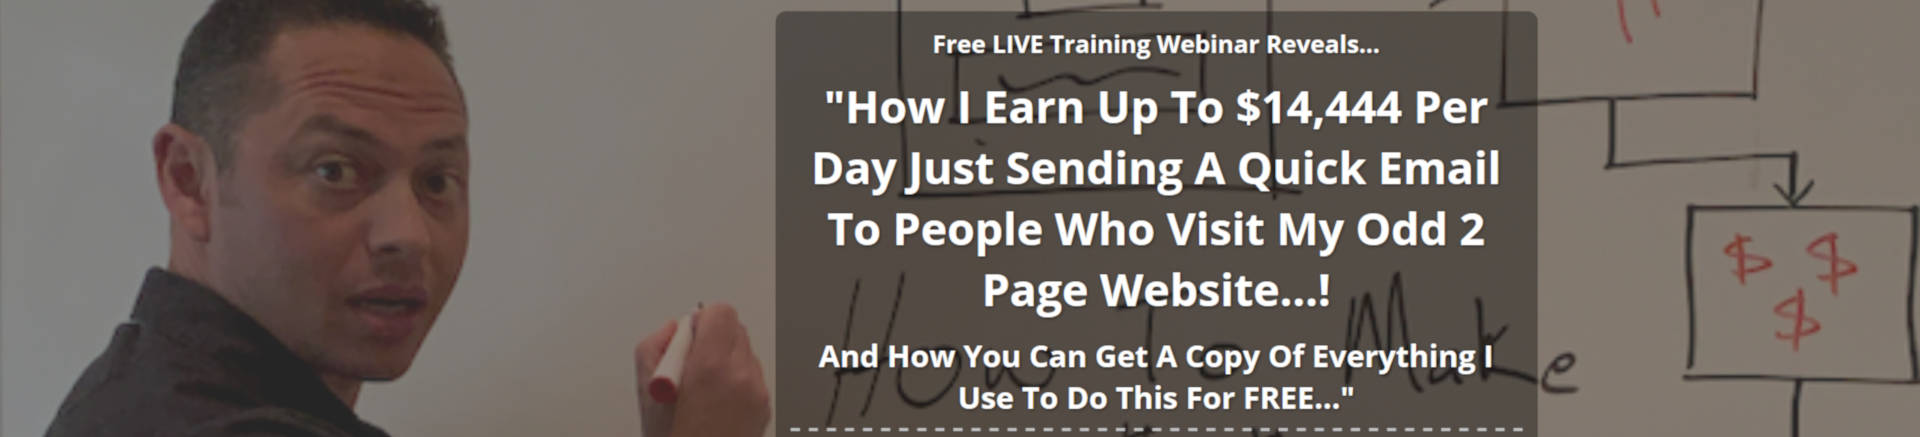 Cheap Training Program 1k A Day Fast Track  Buy Amazon